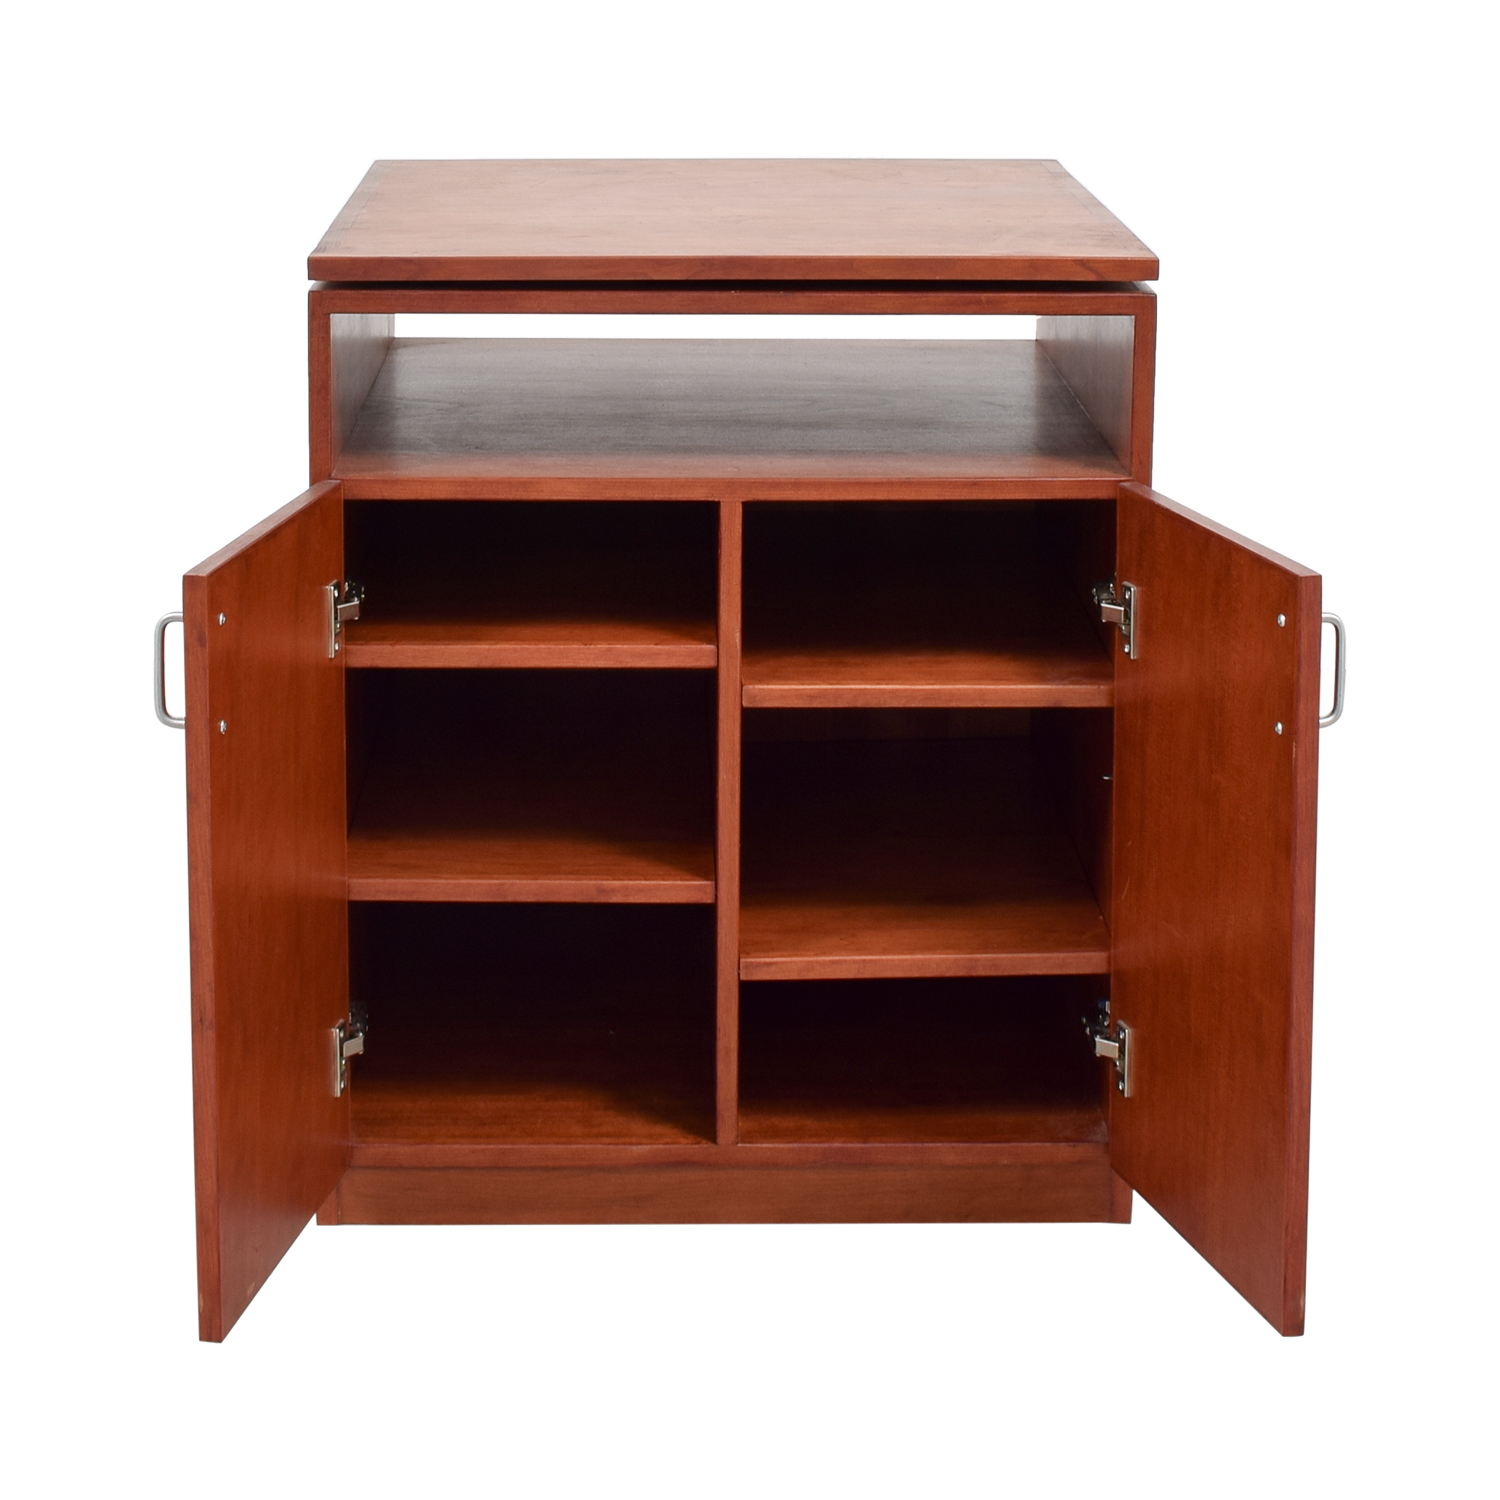 57th Street Bookcase & Cabinet 57th Street Bookcase & Cabinet Swivel TV Console Media Units